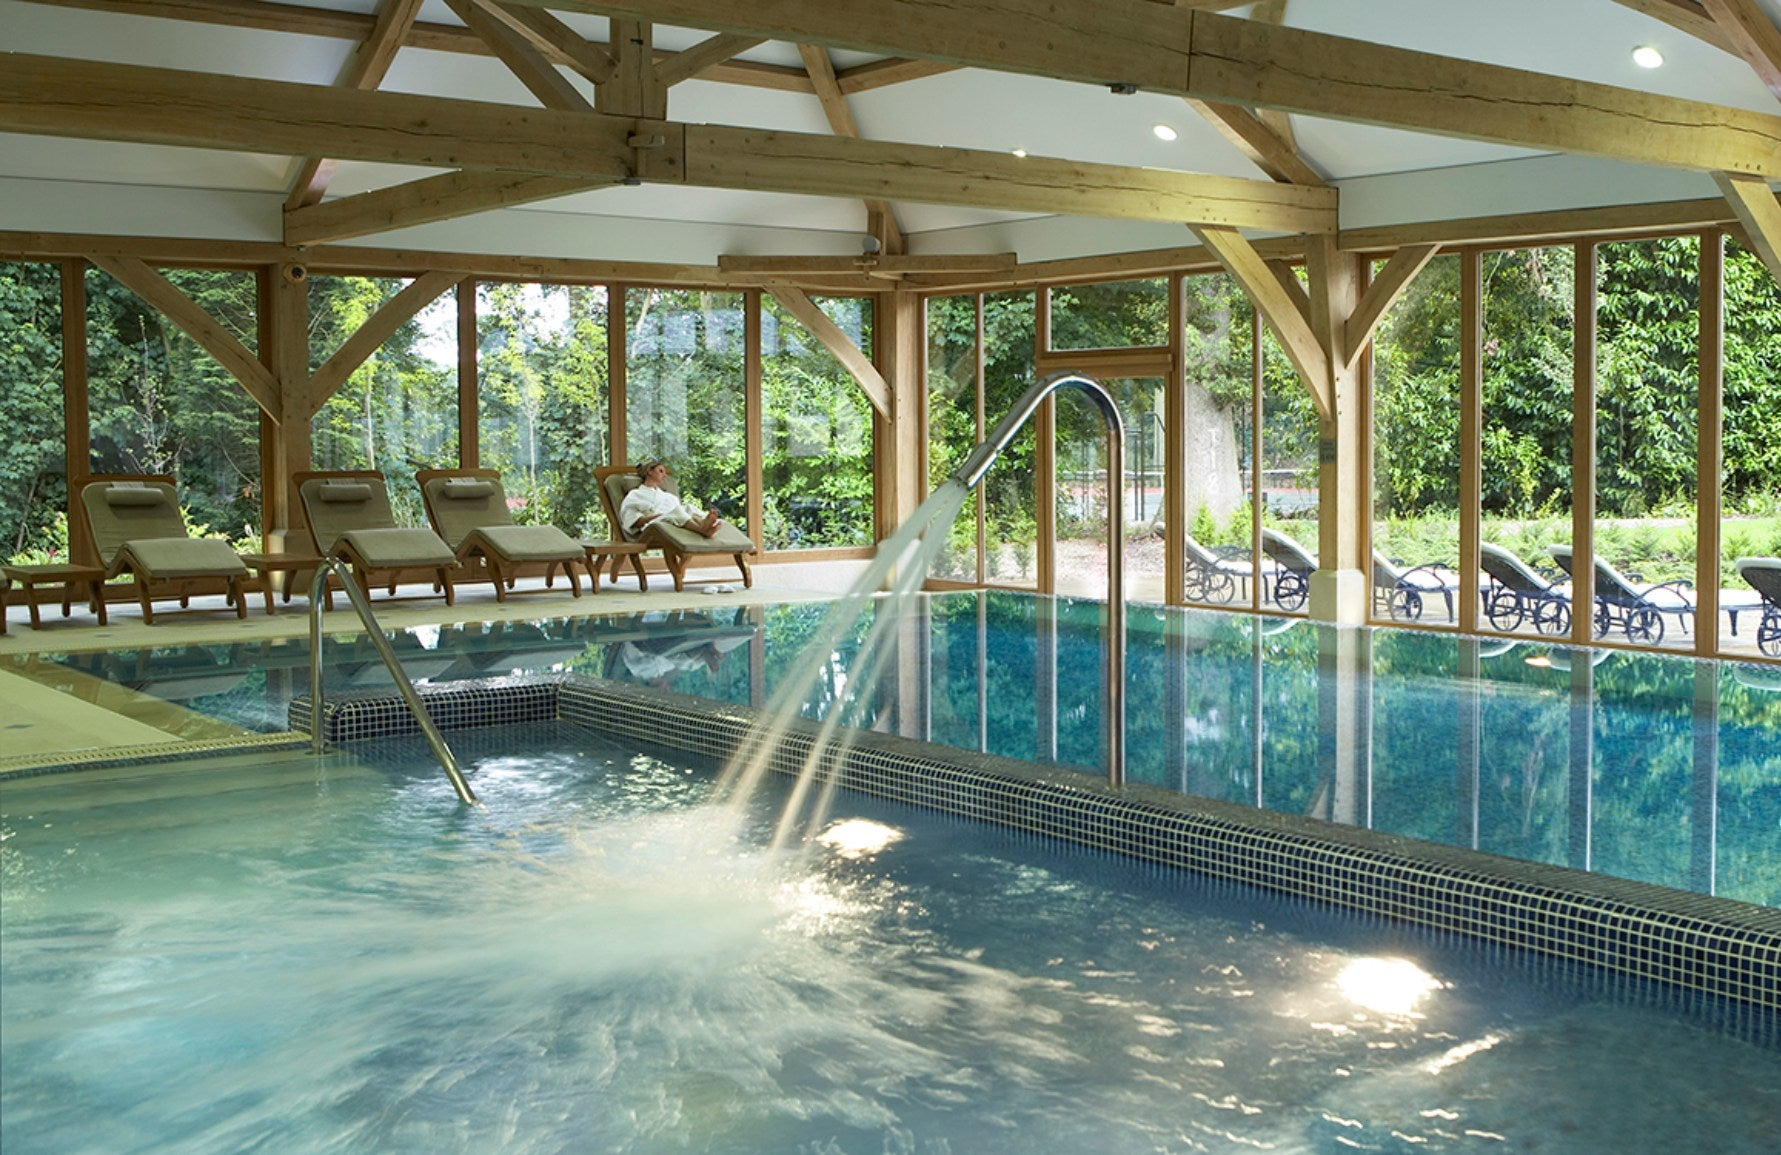 Luton Hoo Spa | Read more about Britain's top spa hotels at LuxDeco.com